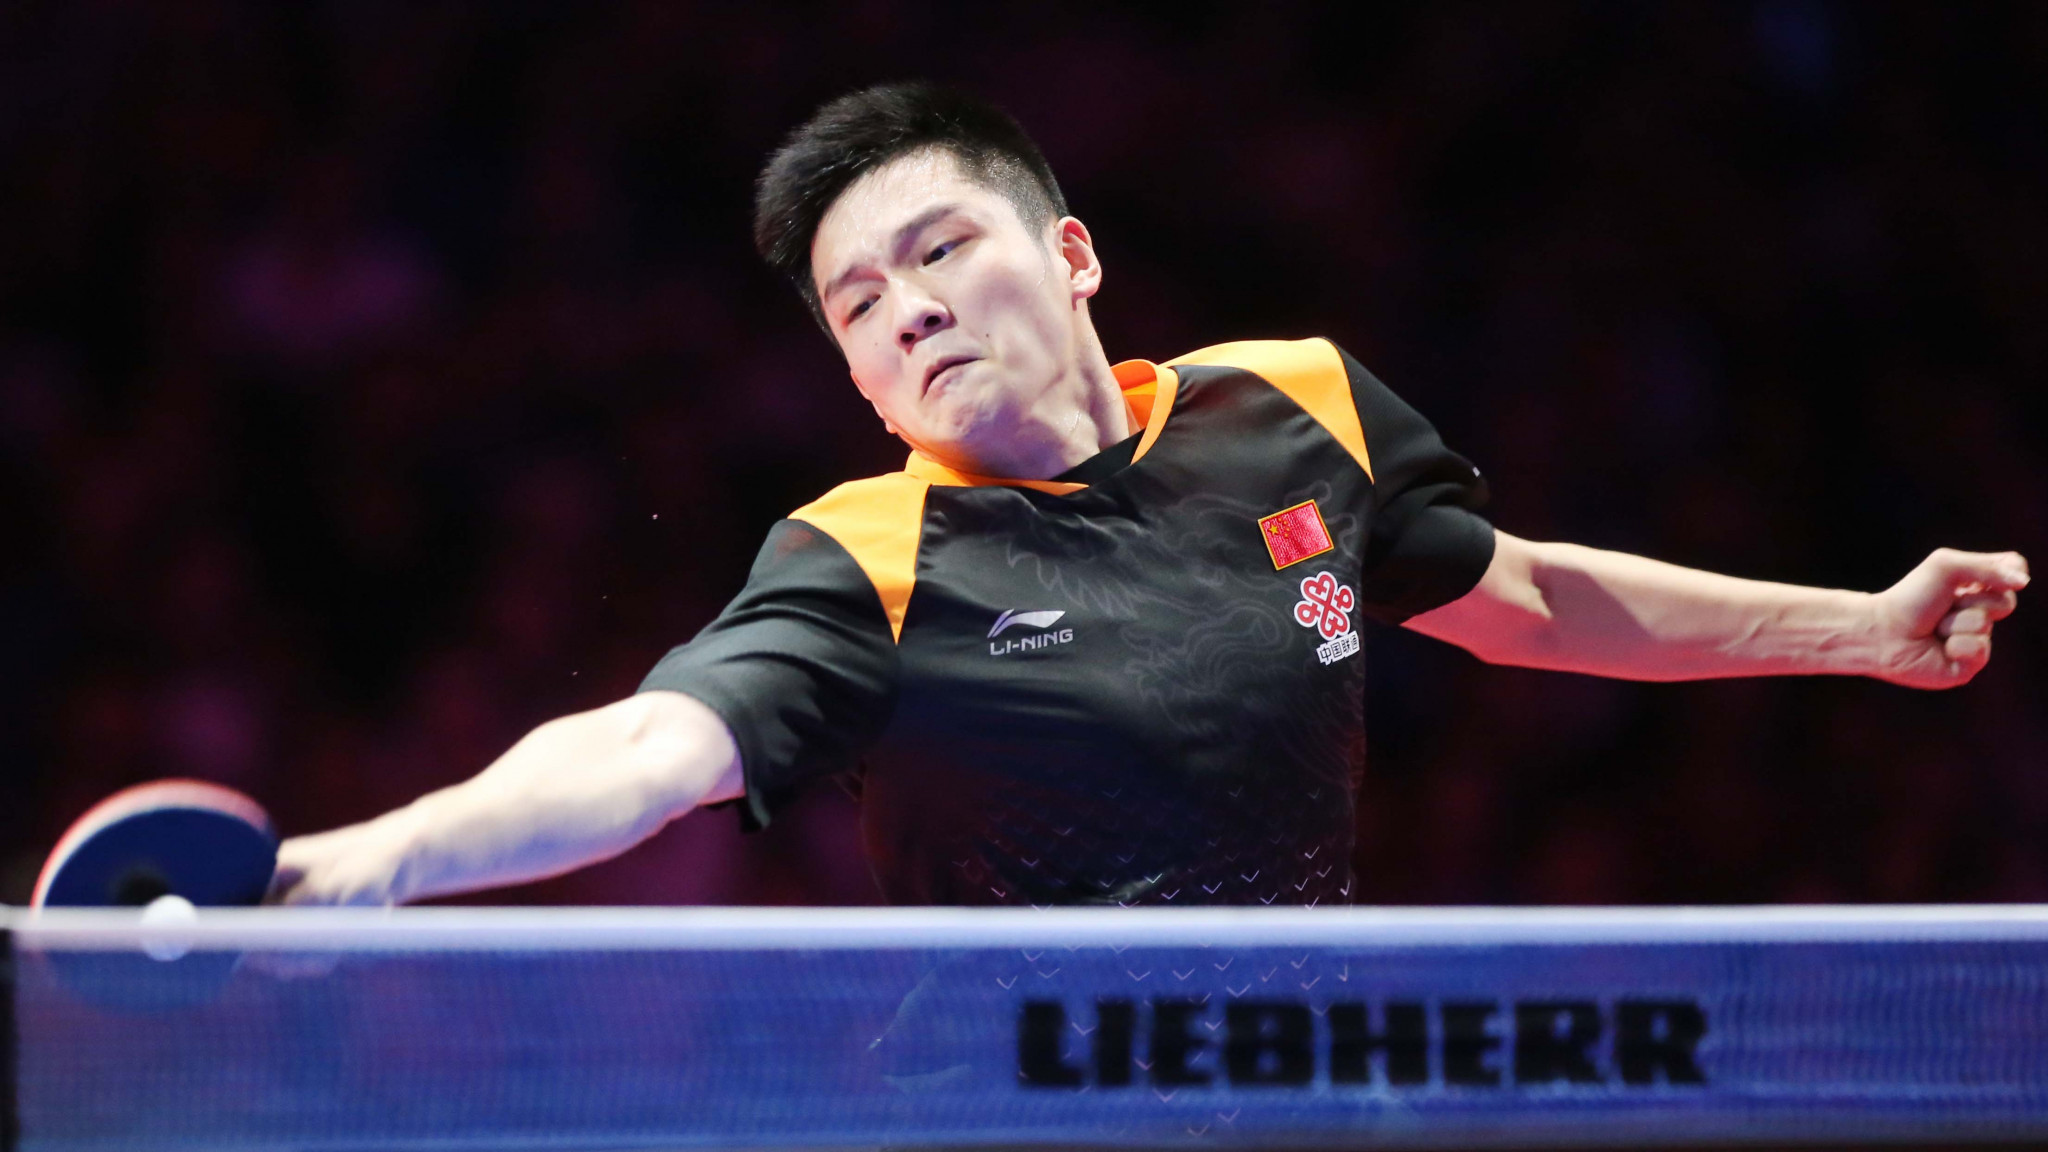 Fan defeats Boll to clinch ITTF Men's World Cup title